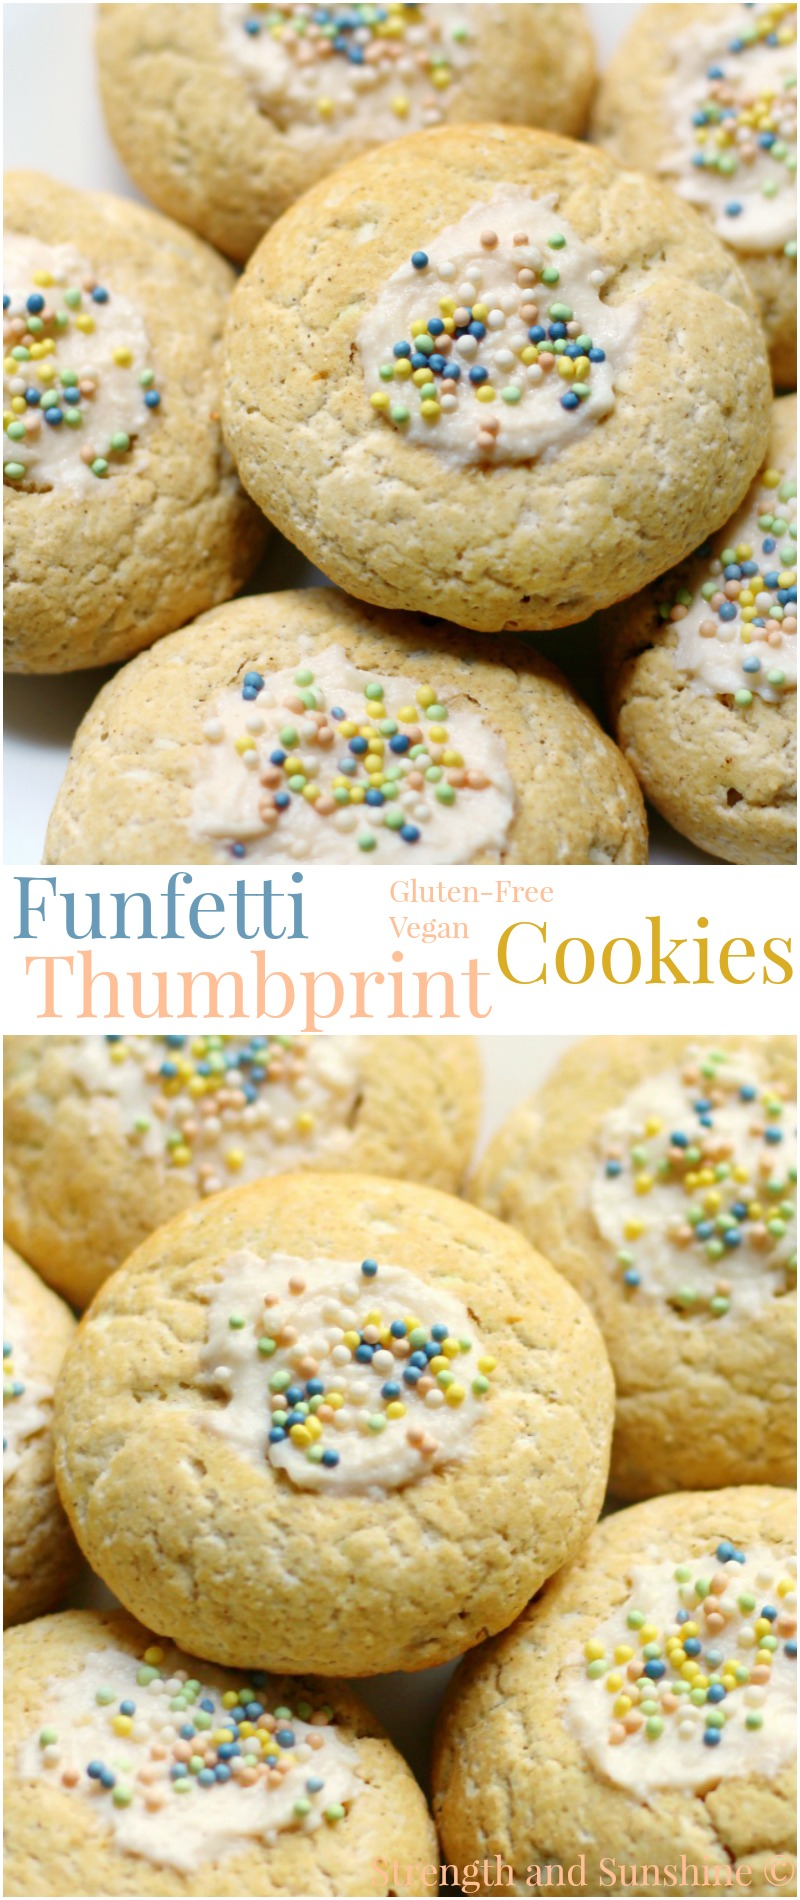 "Funfetti Thumbprint Cookies | Strength and Sunshine @RebeccaGF666 All of the cake qualities of Funfetti in cookie form! Gluten-free and vegan Funfetti Thumbprint Cookies, soft, sweet, & tender with a ""cream cheese"" center to mimic frosting! The iconic celebratory dessert for any occasion!"